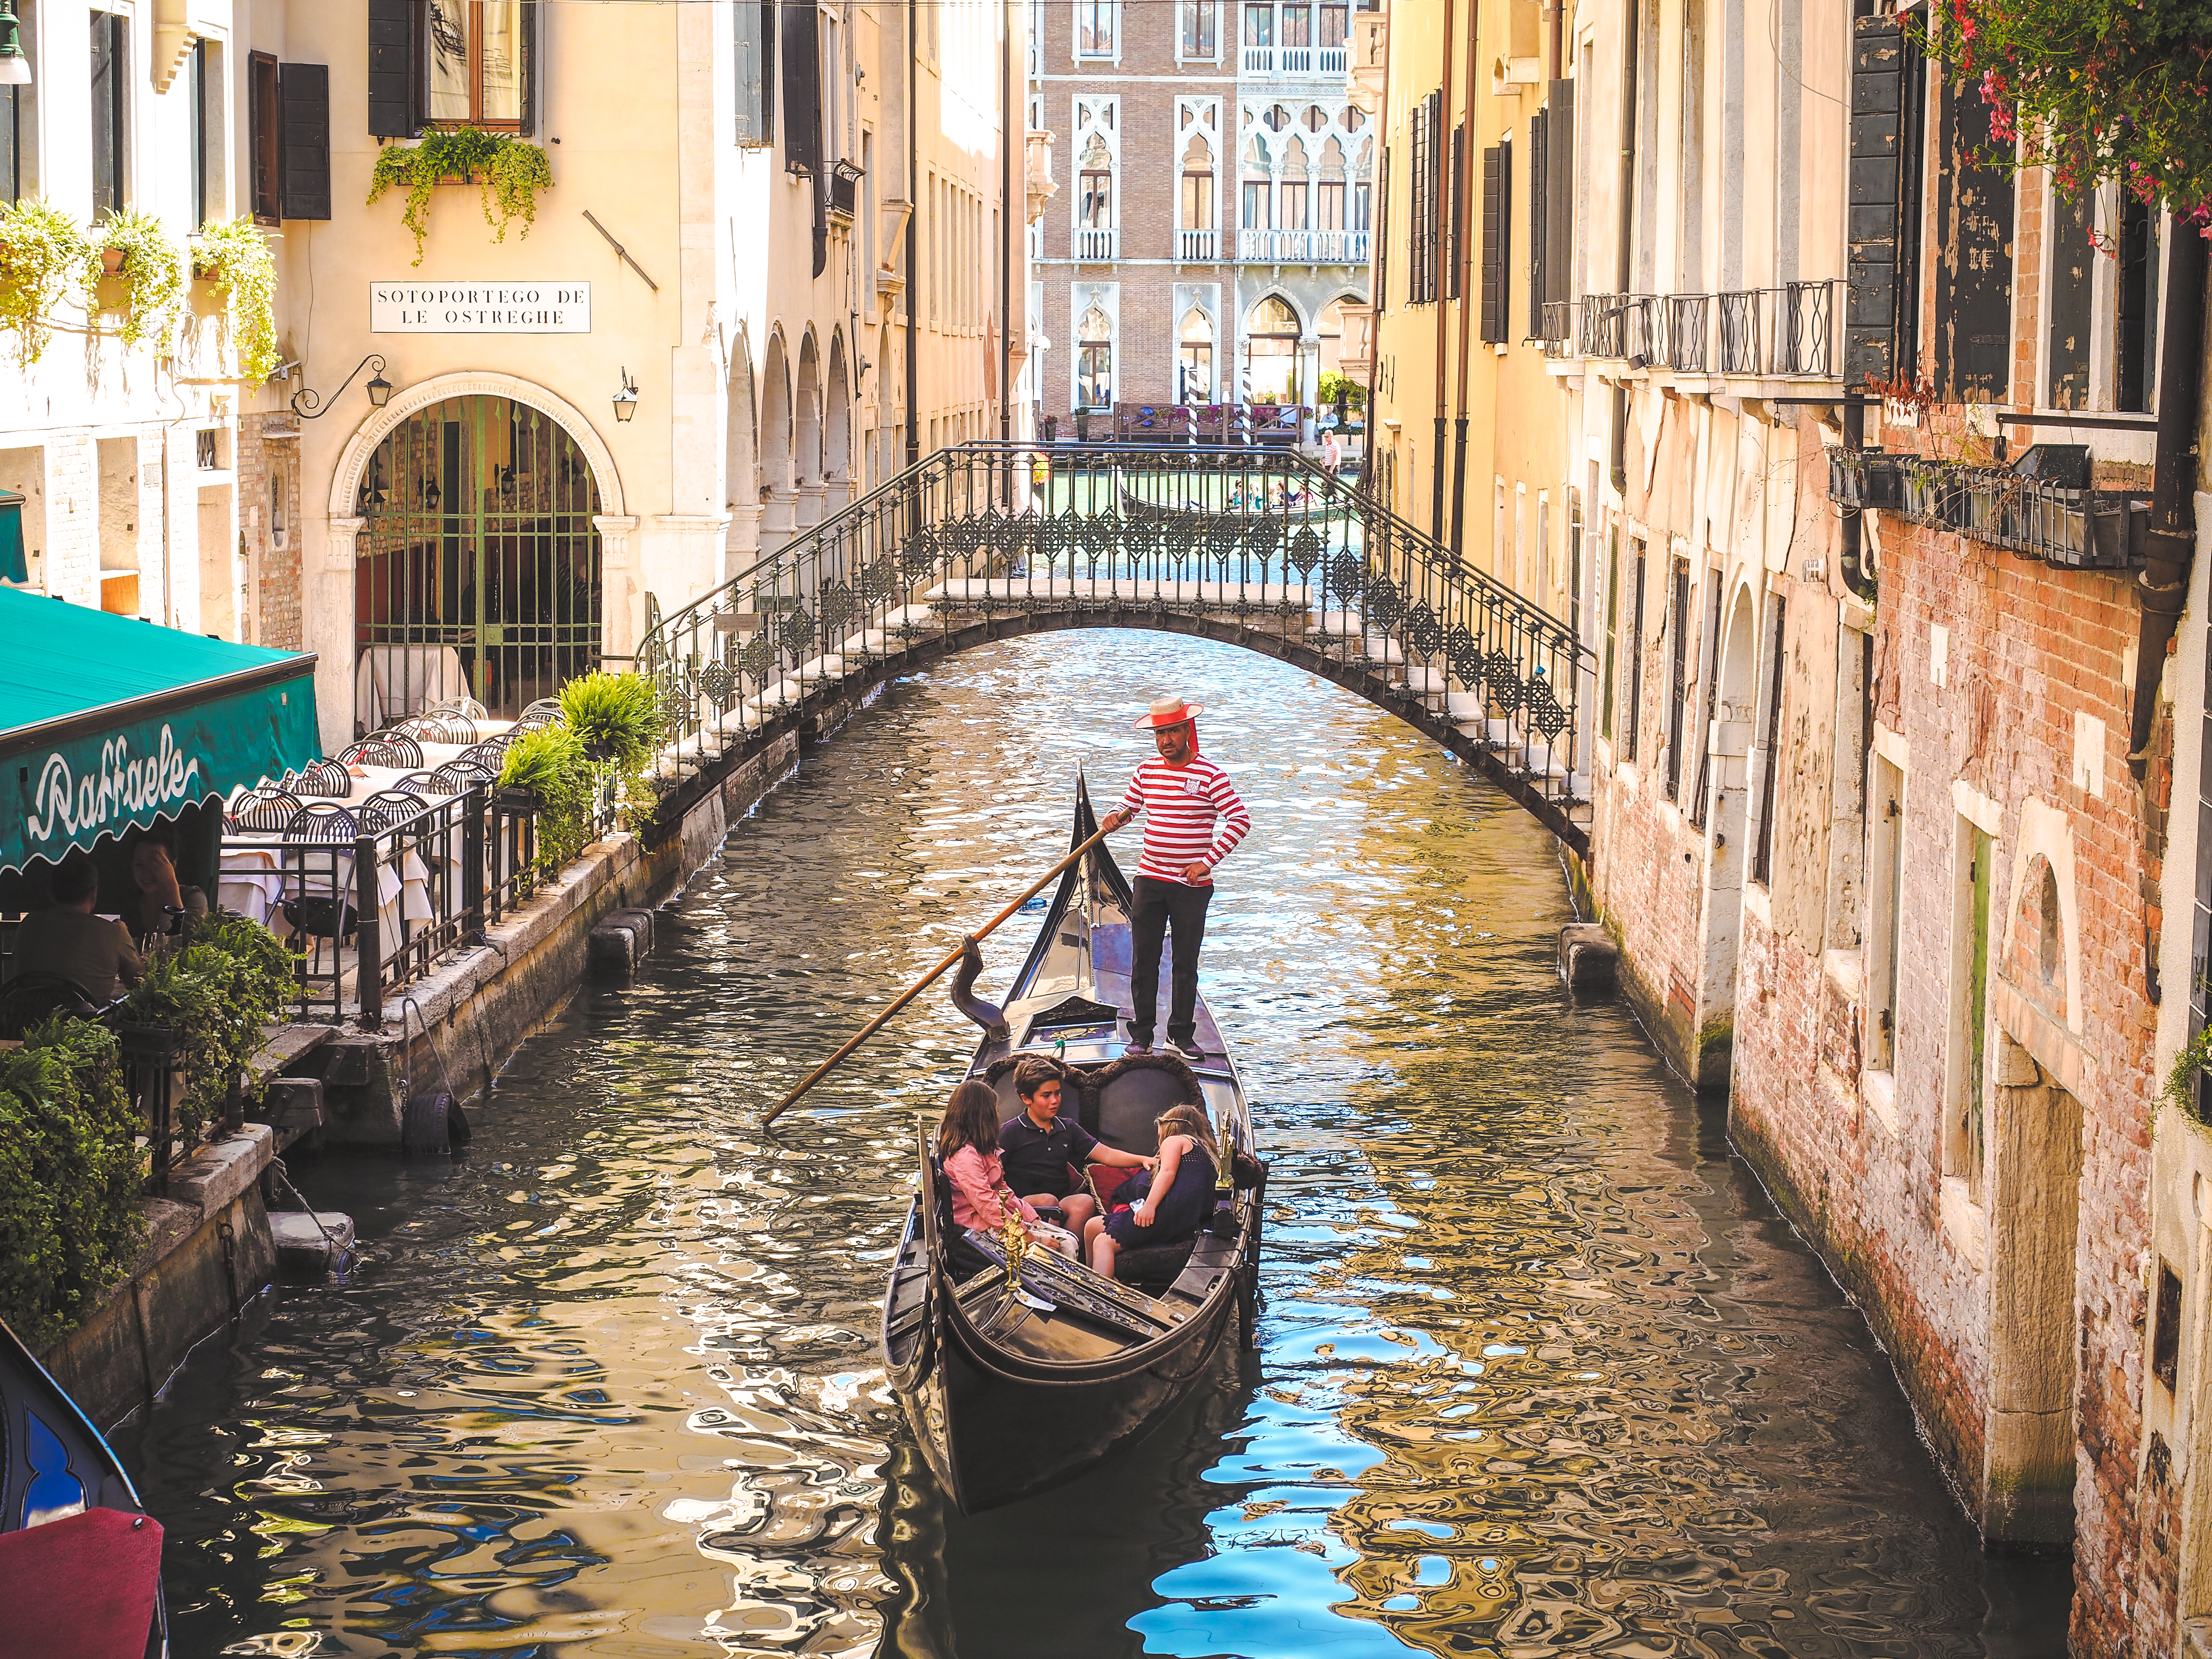 Traditional Gondola with tourists in Venice canal